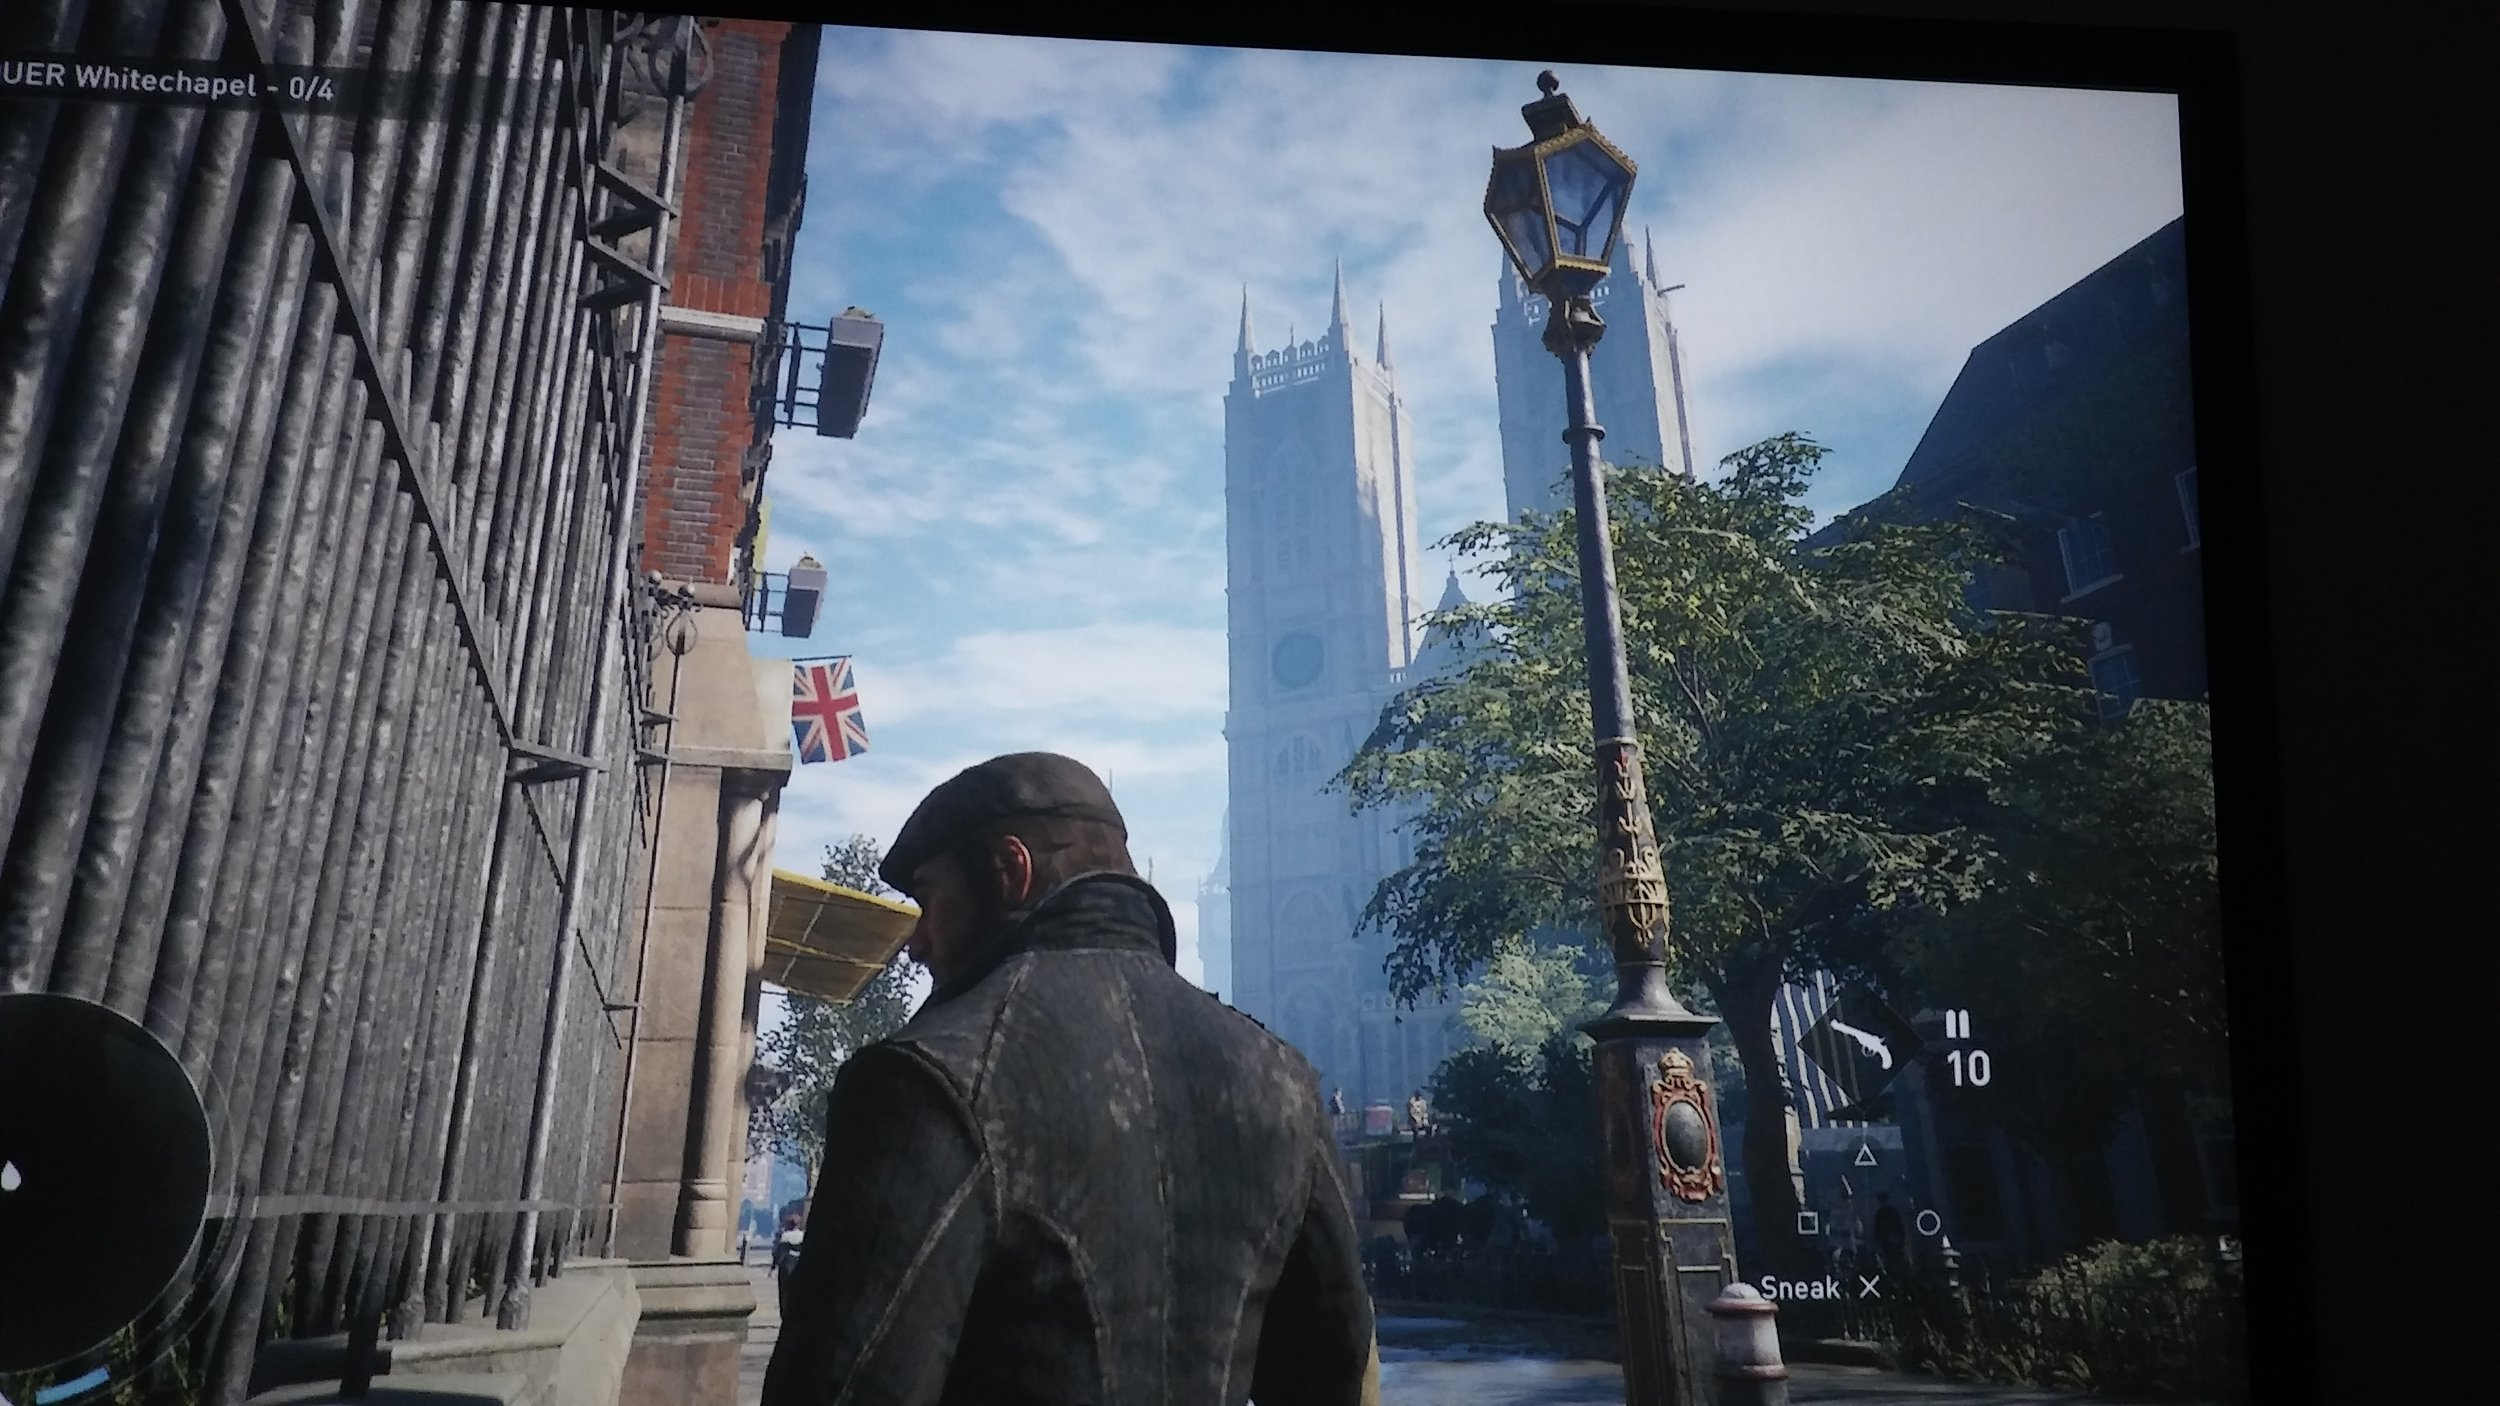 Ten feet of Assassin's Creed Syndicate.